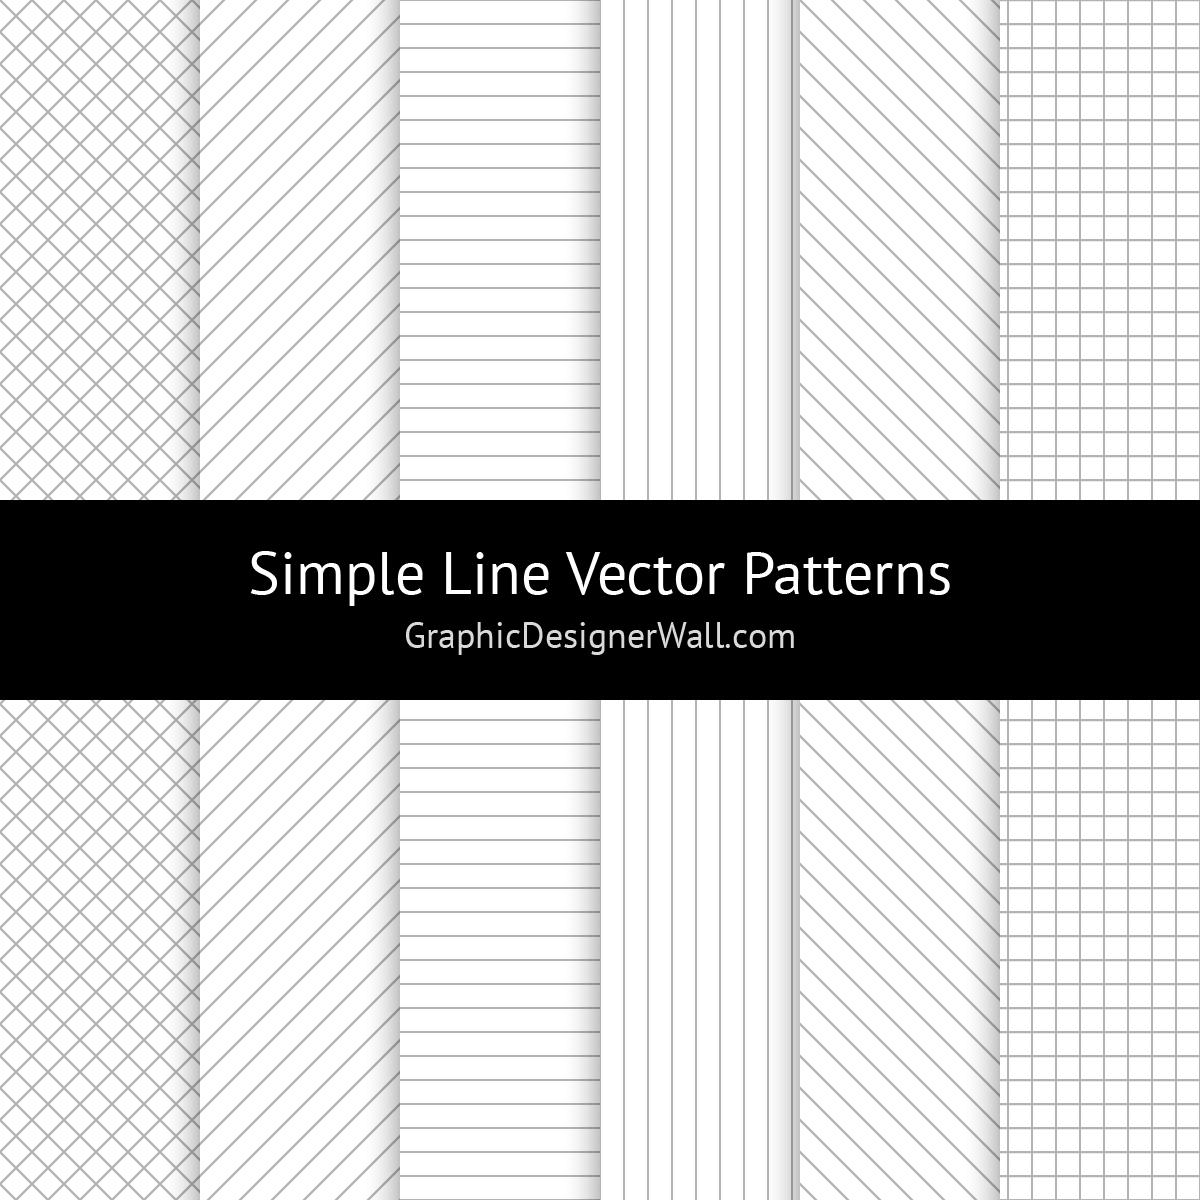 Simple Line Vector Patterns